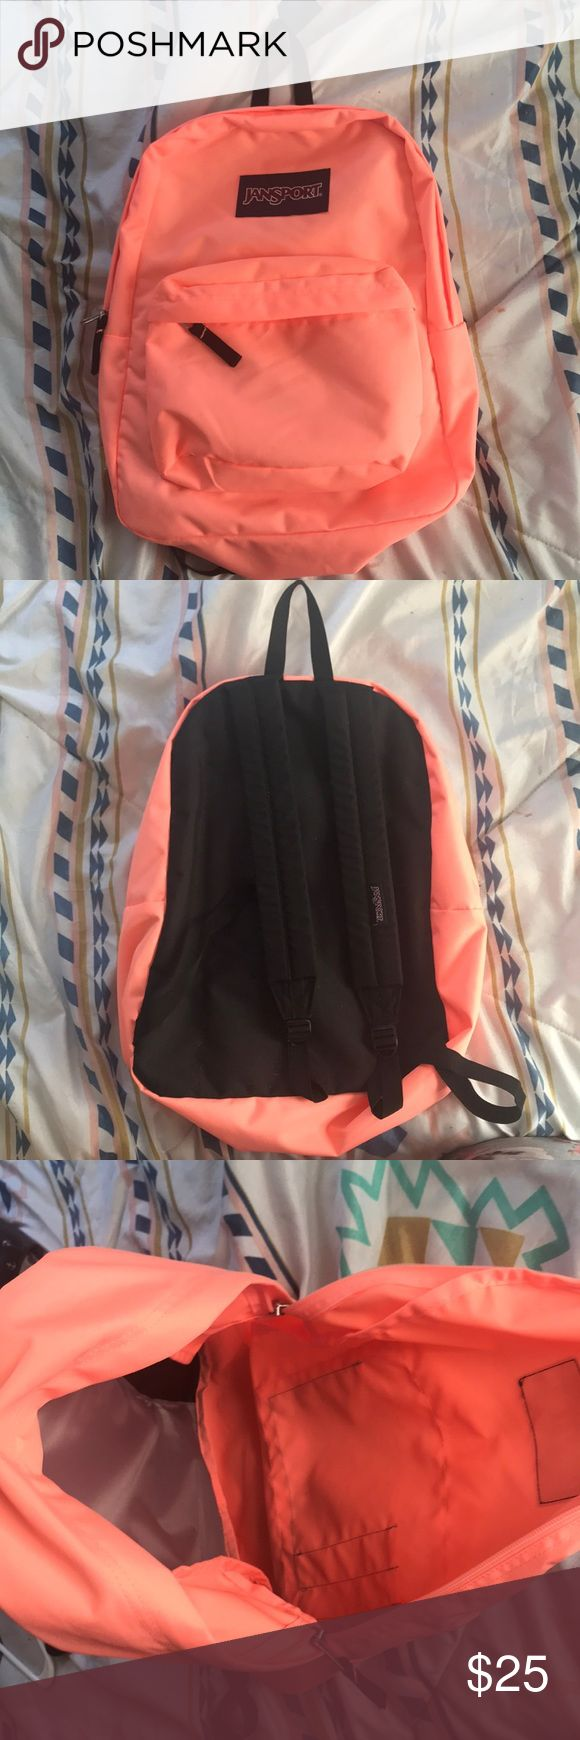 SALE $16 final price Great condition pink jansport backpack barely used Jansport Bags Backpacks